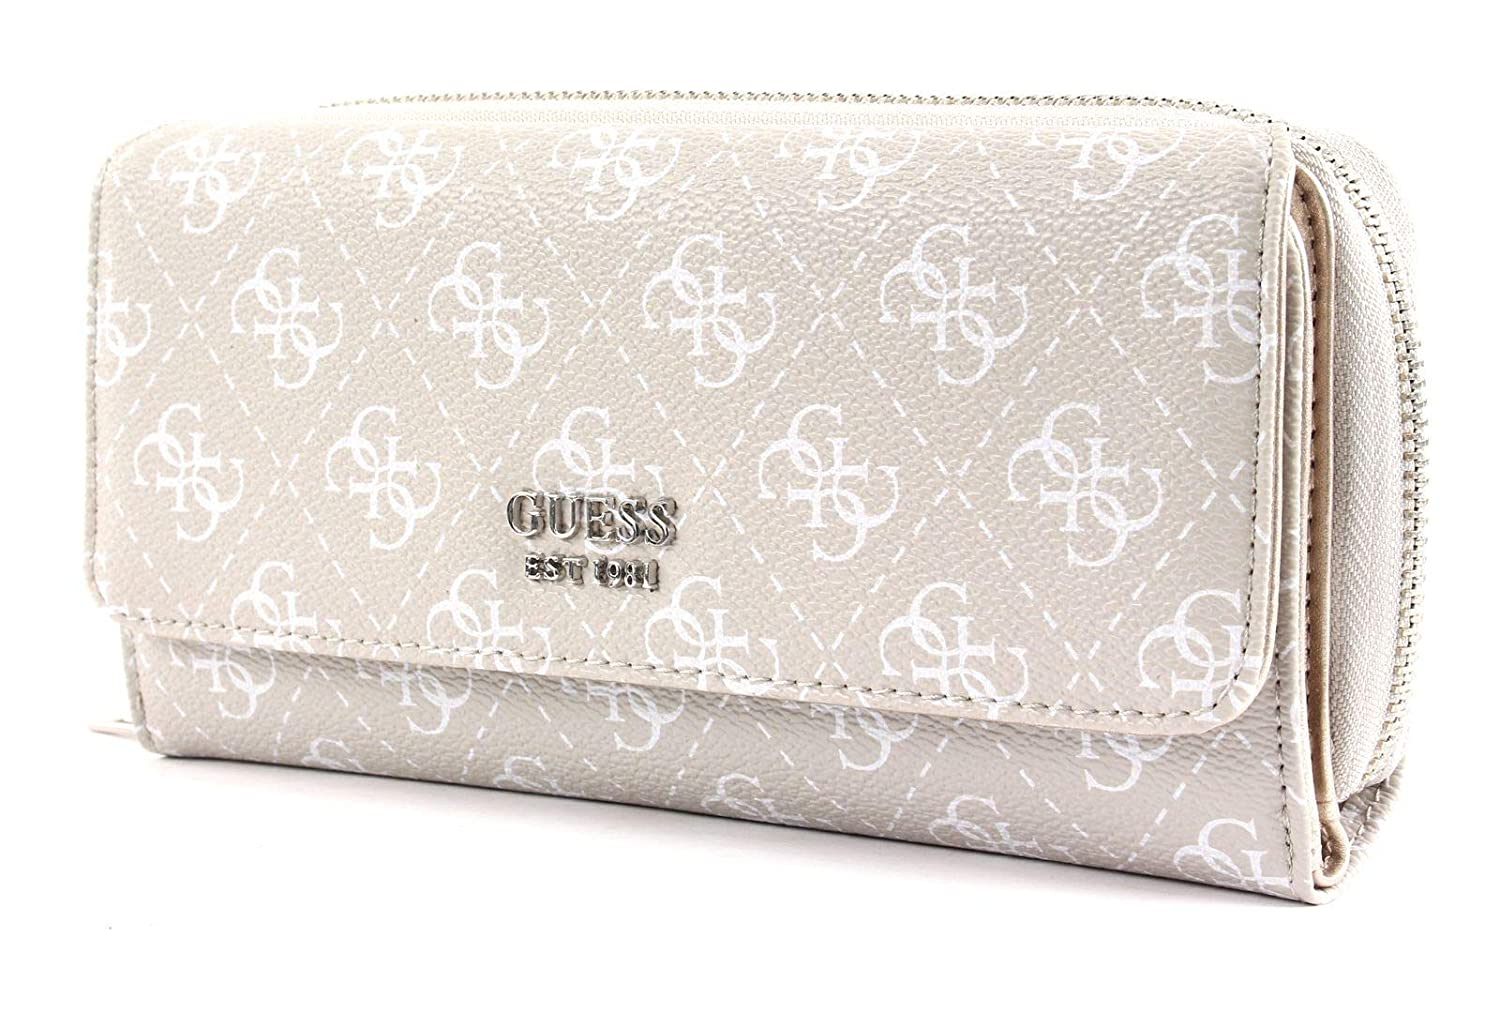 Guess Affair SLG Large Clutch Organizer Stone: